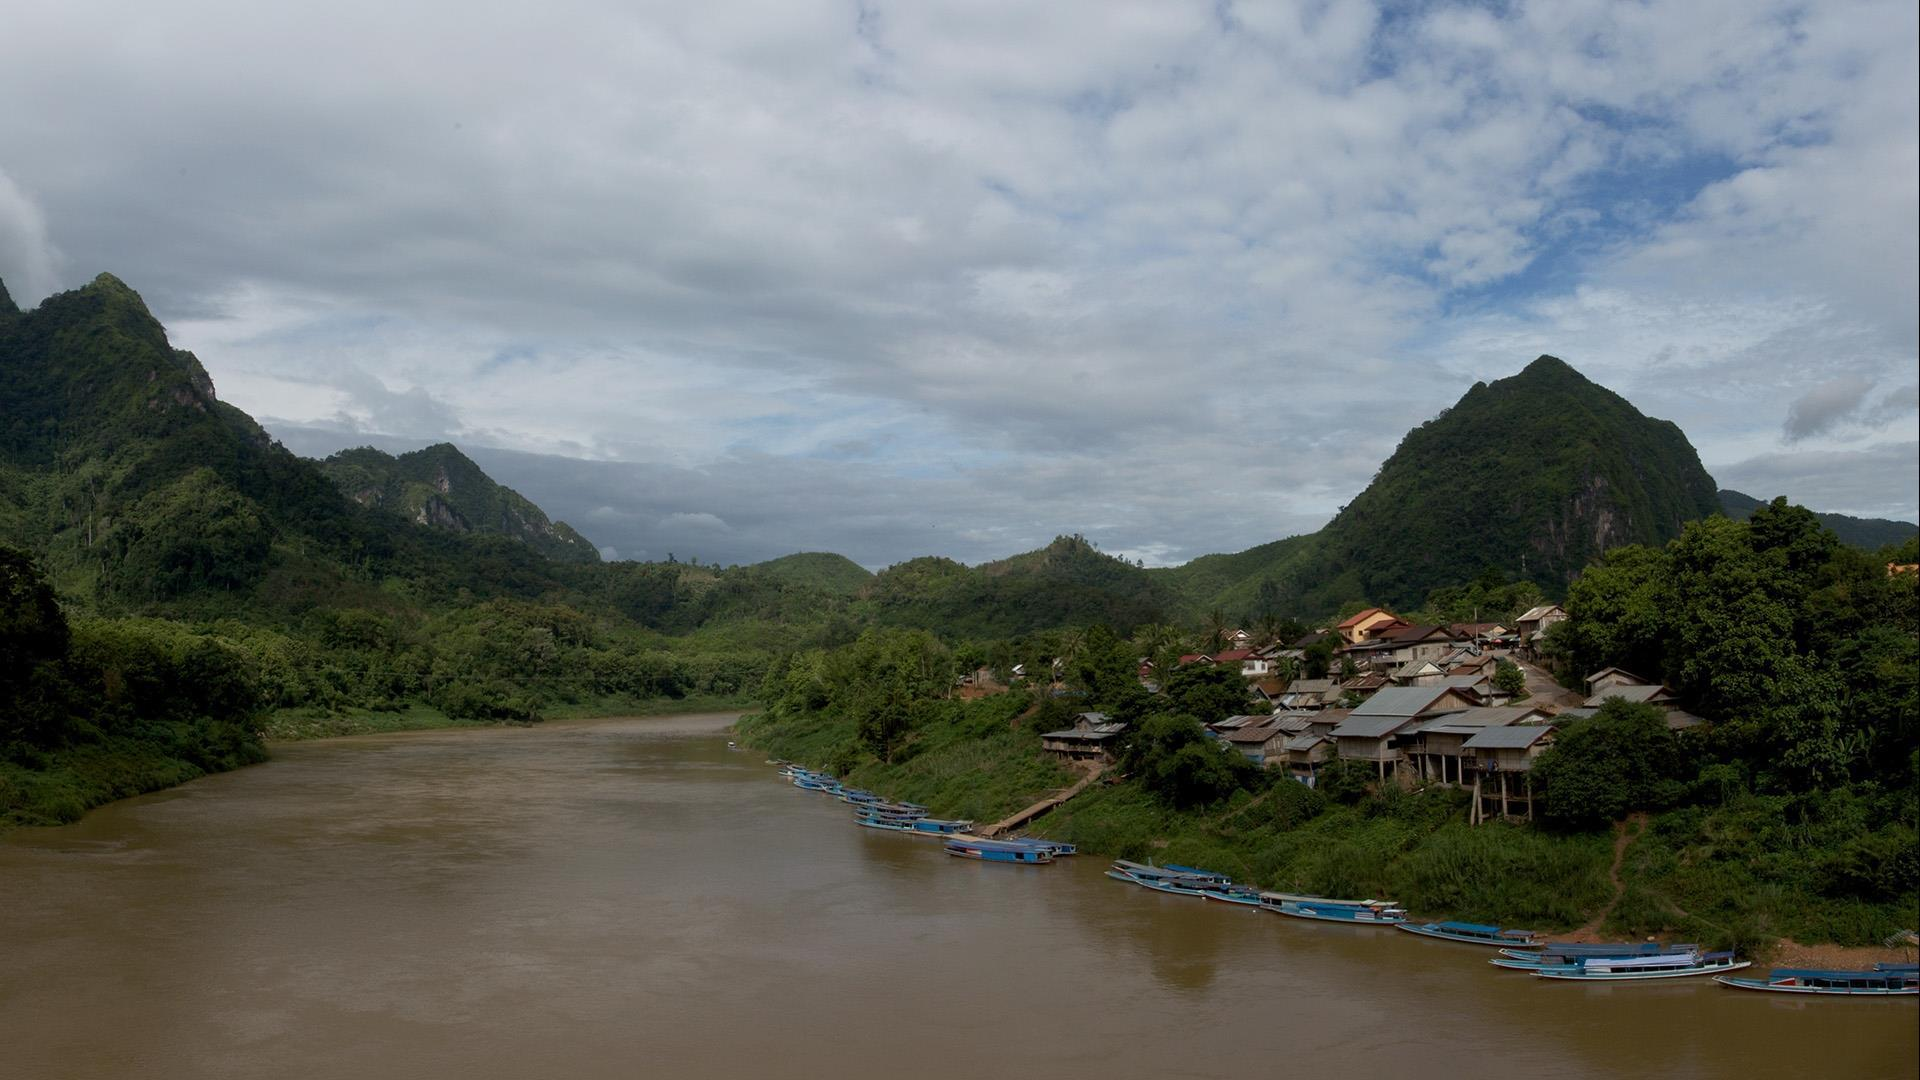 Laos, Luang Prabang – Oudomxay – Nong Khiaw: 4 Day Northern Loop - 4 Day | Cycling tour through the northern part of the country